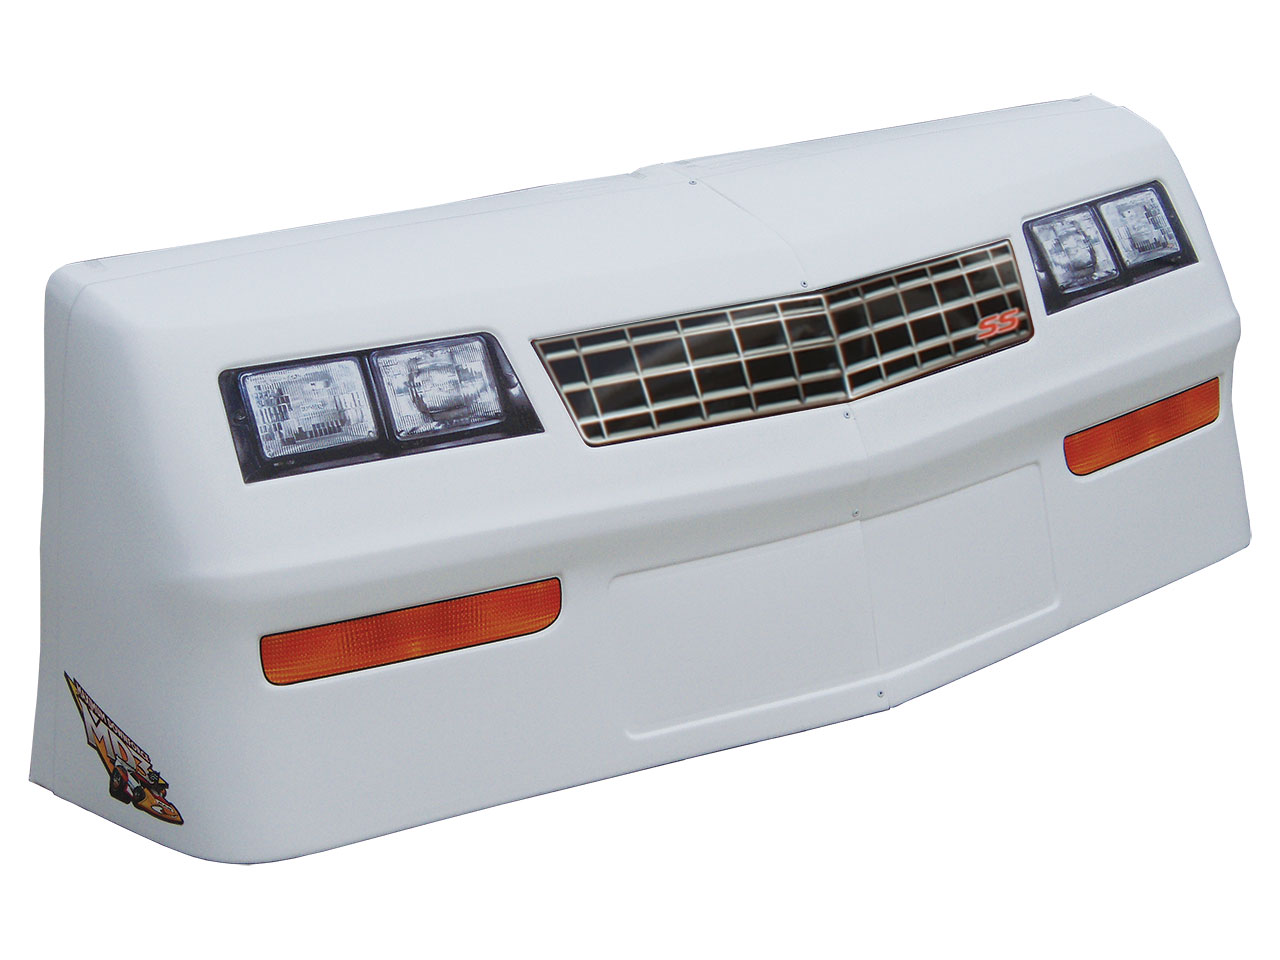 MD3 88 Monte Carlo Nose & Decal Kit - (White - Stock Grill)